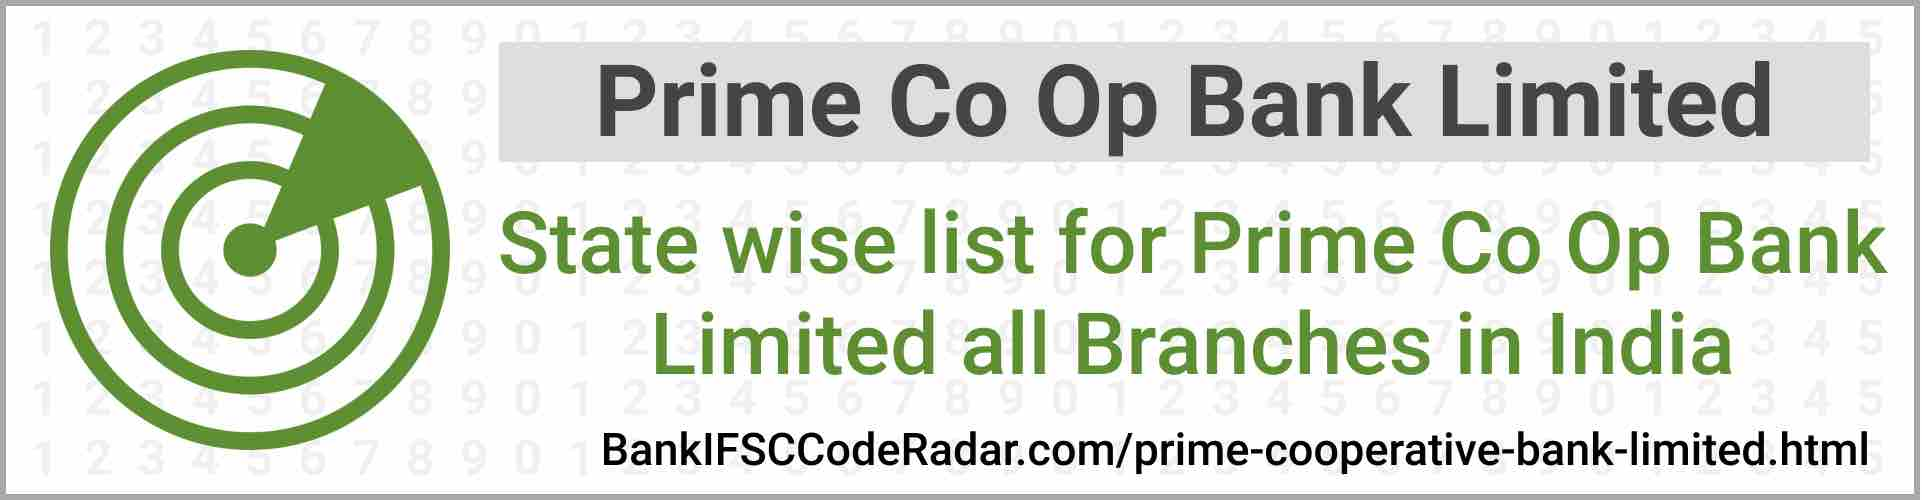 Prime Cooperative Bank Limited All Branches India